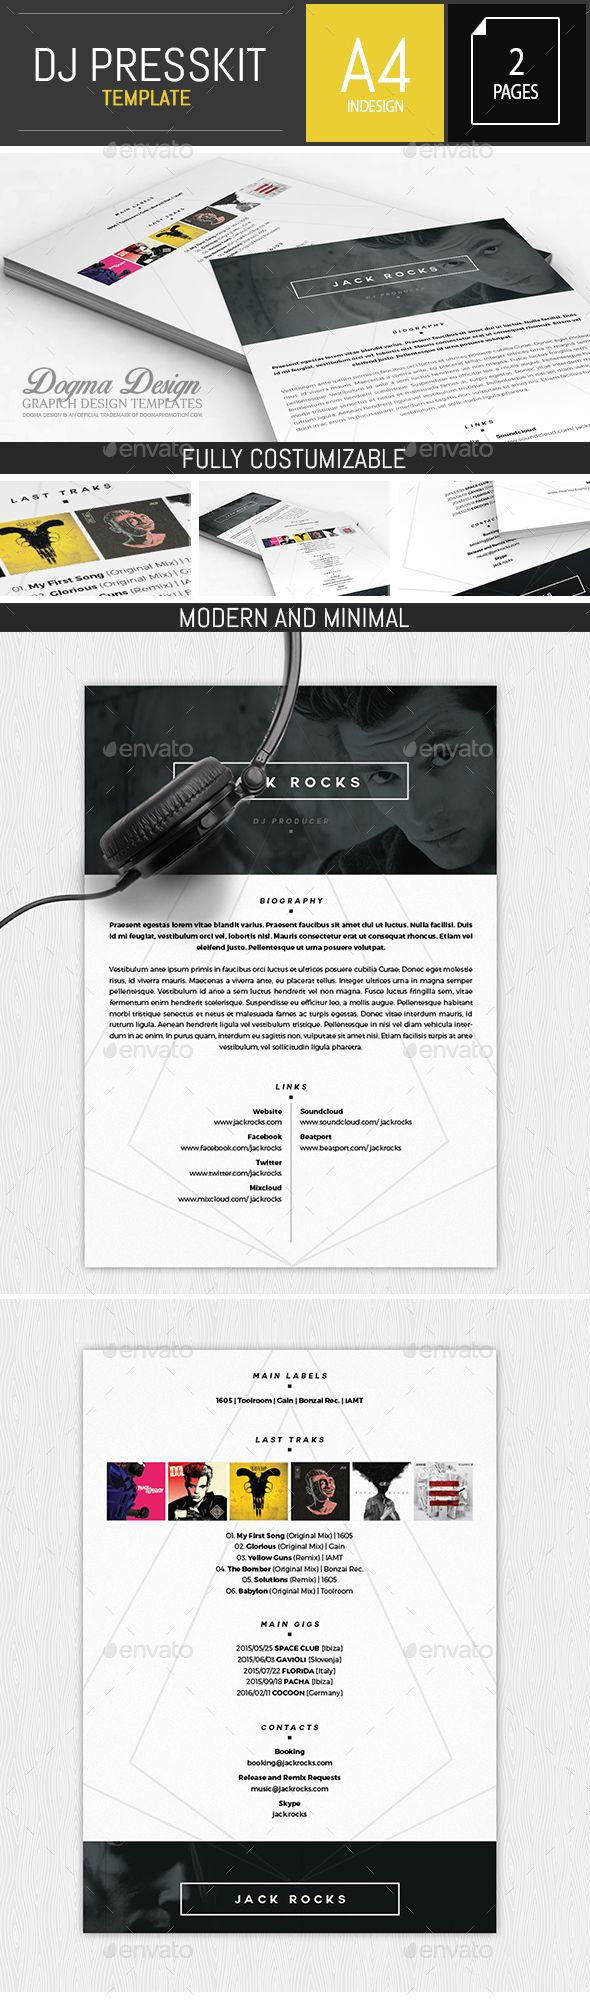 21 best dj press kit and dj resume templates images on